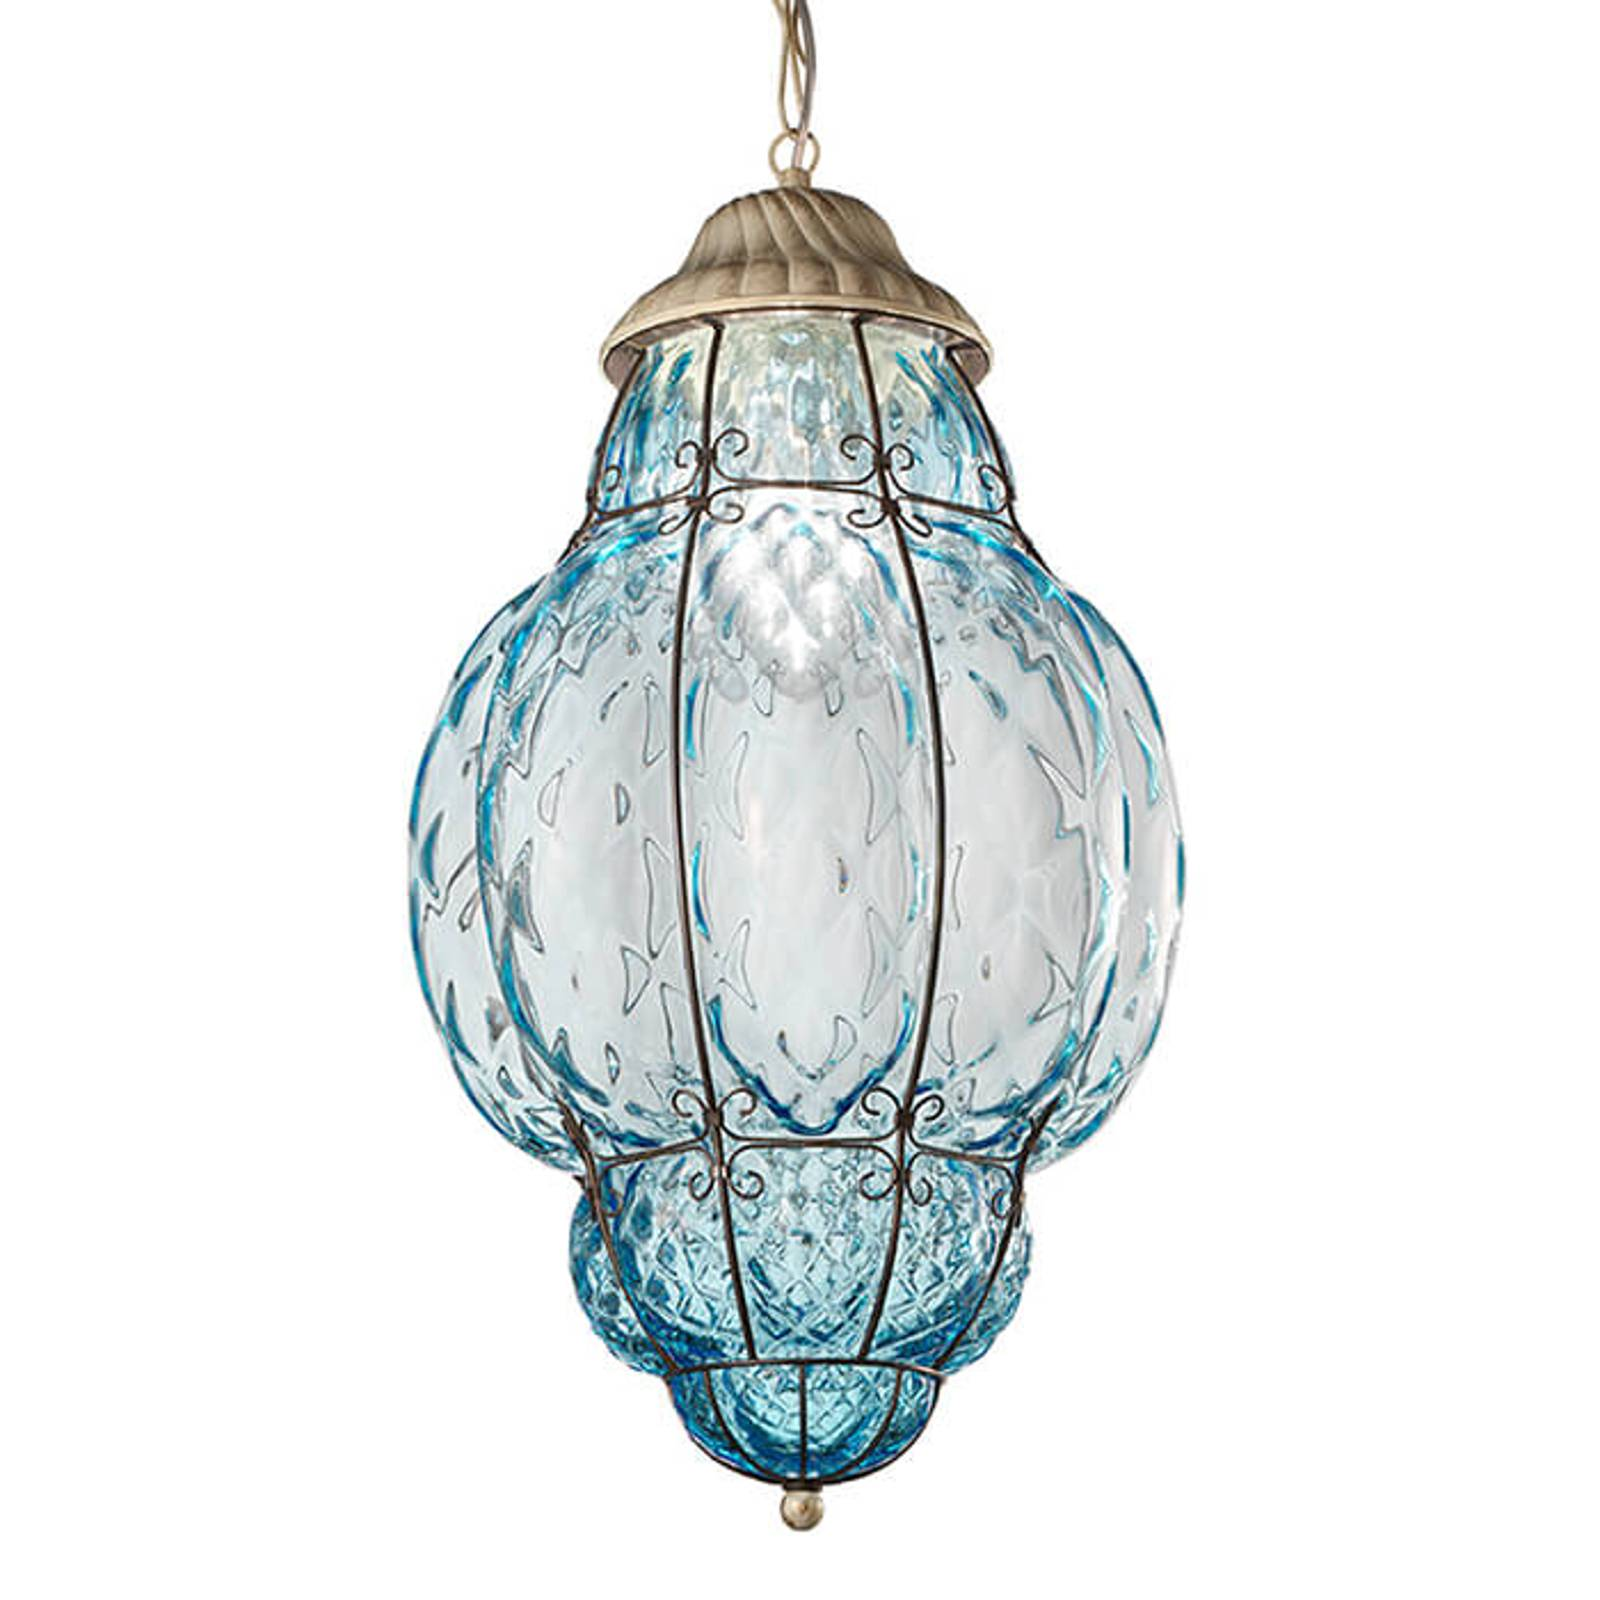 Extravagant Classic hanging light for outdoors from Siru